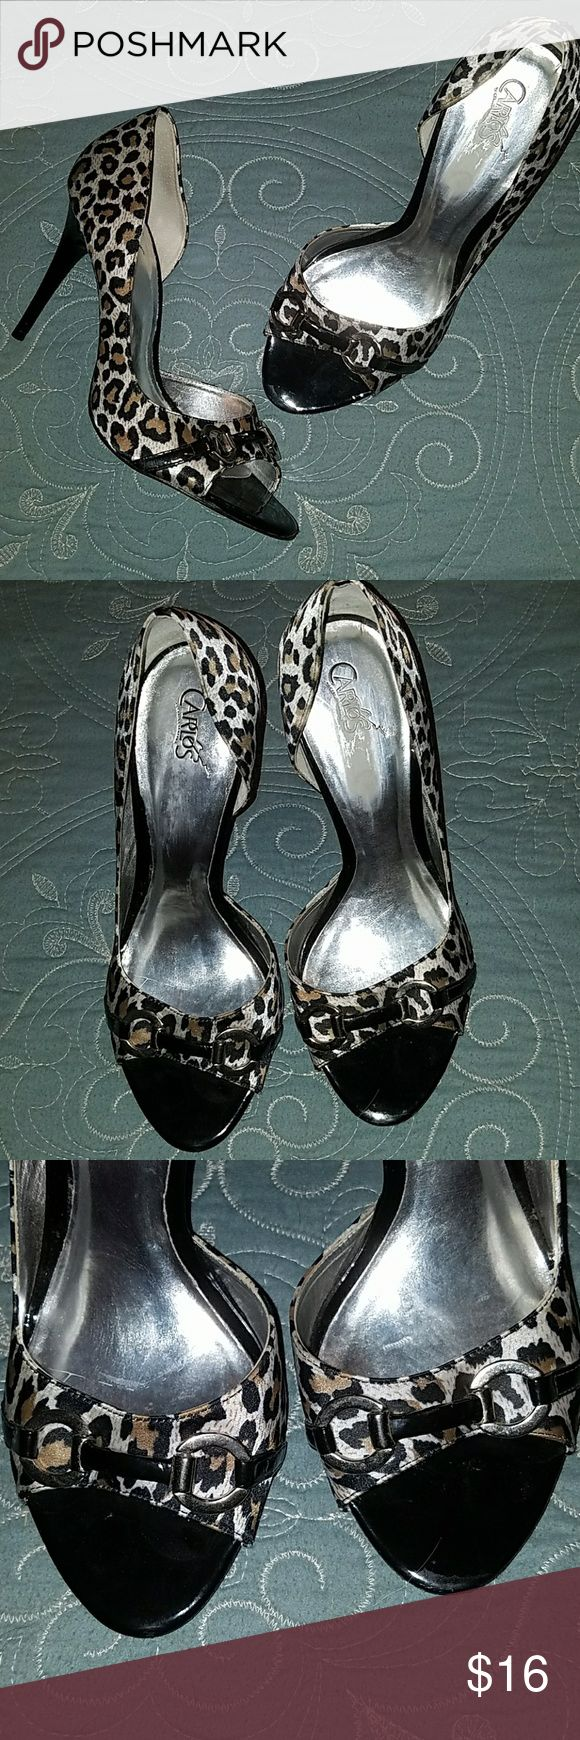 Carlos Santana leopard high heels These cute shoes are in amazing condition material is satin upper. Smudges on the inside of the shoe were from where I tried to take off the sticker adhesive and does not affect the quality of the shoe in any way. Carlos Santana Shoes Heels